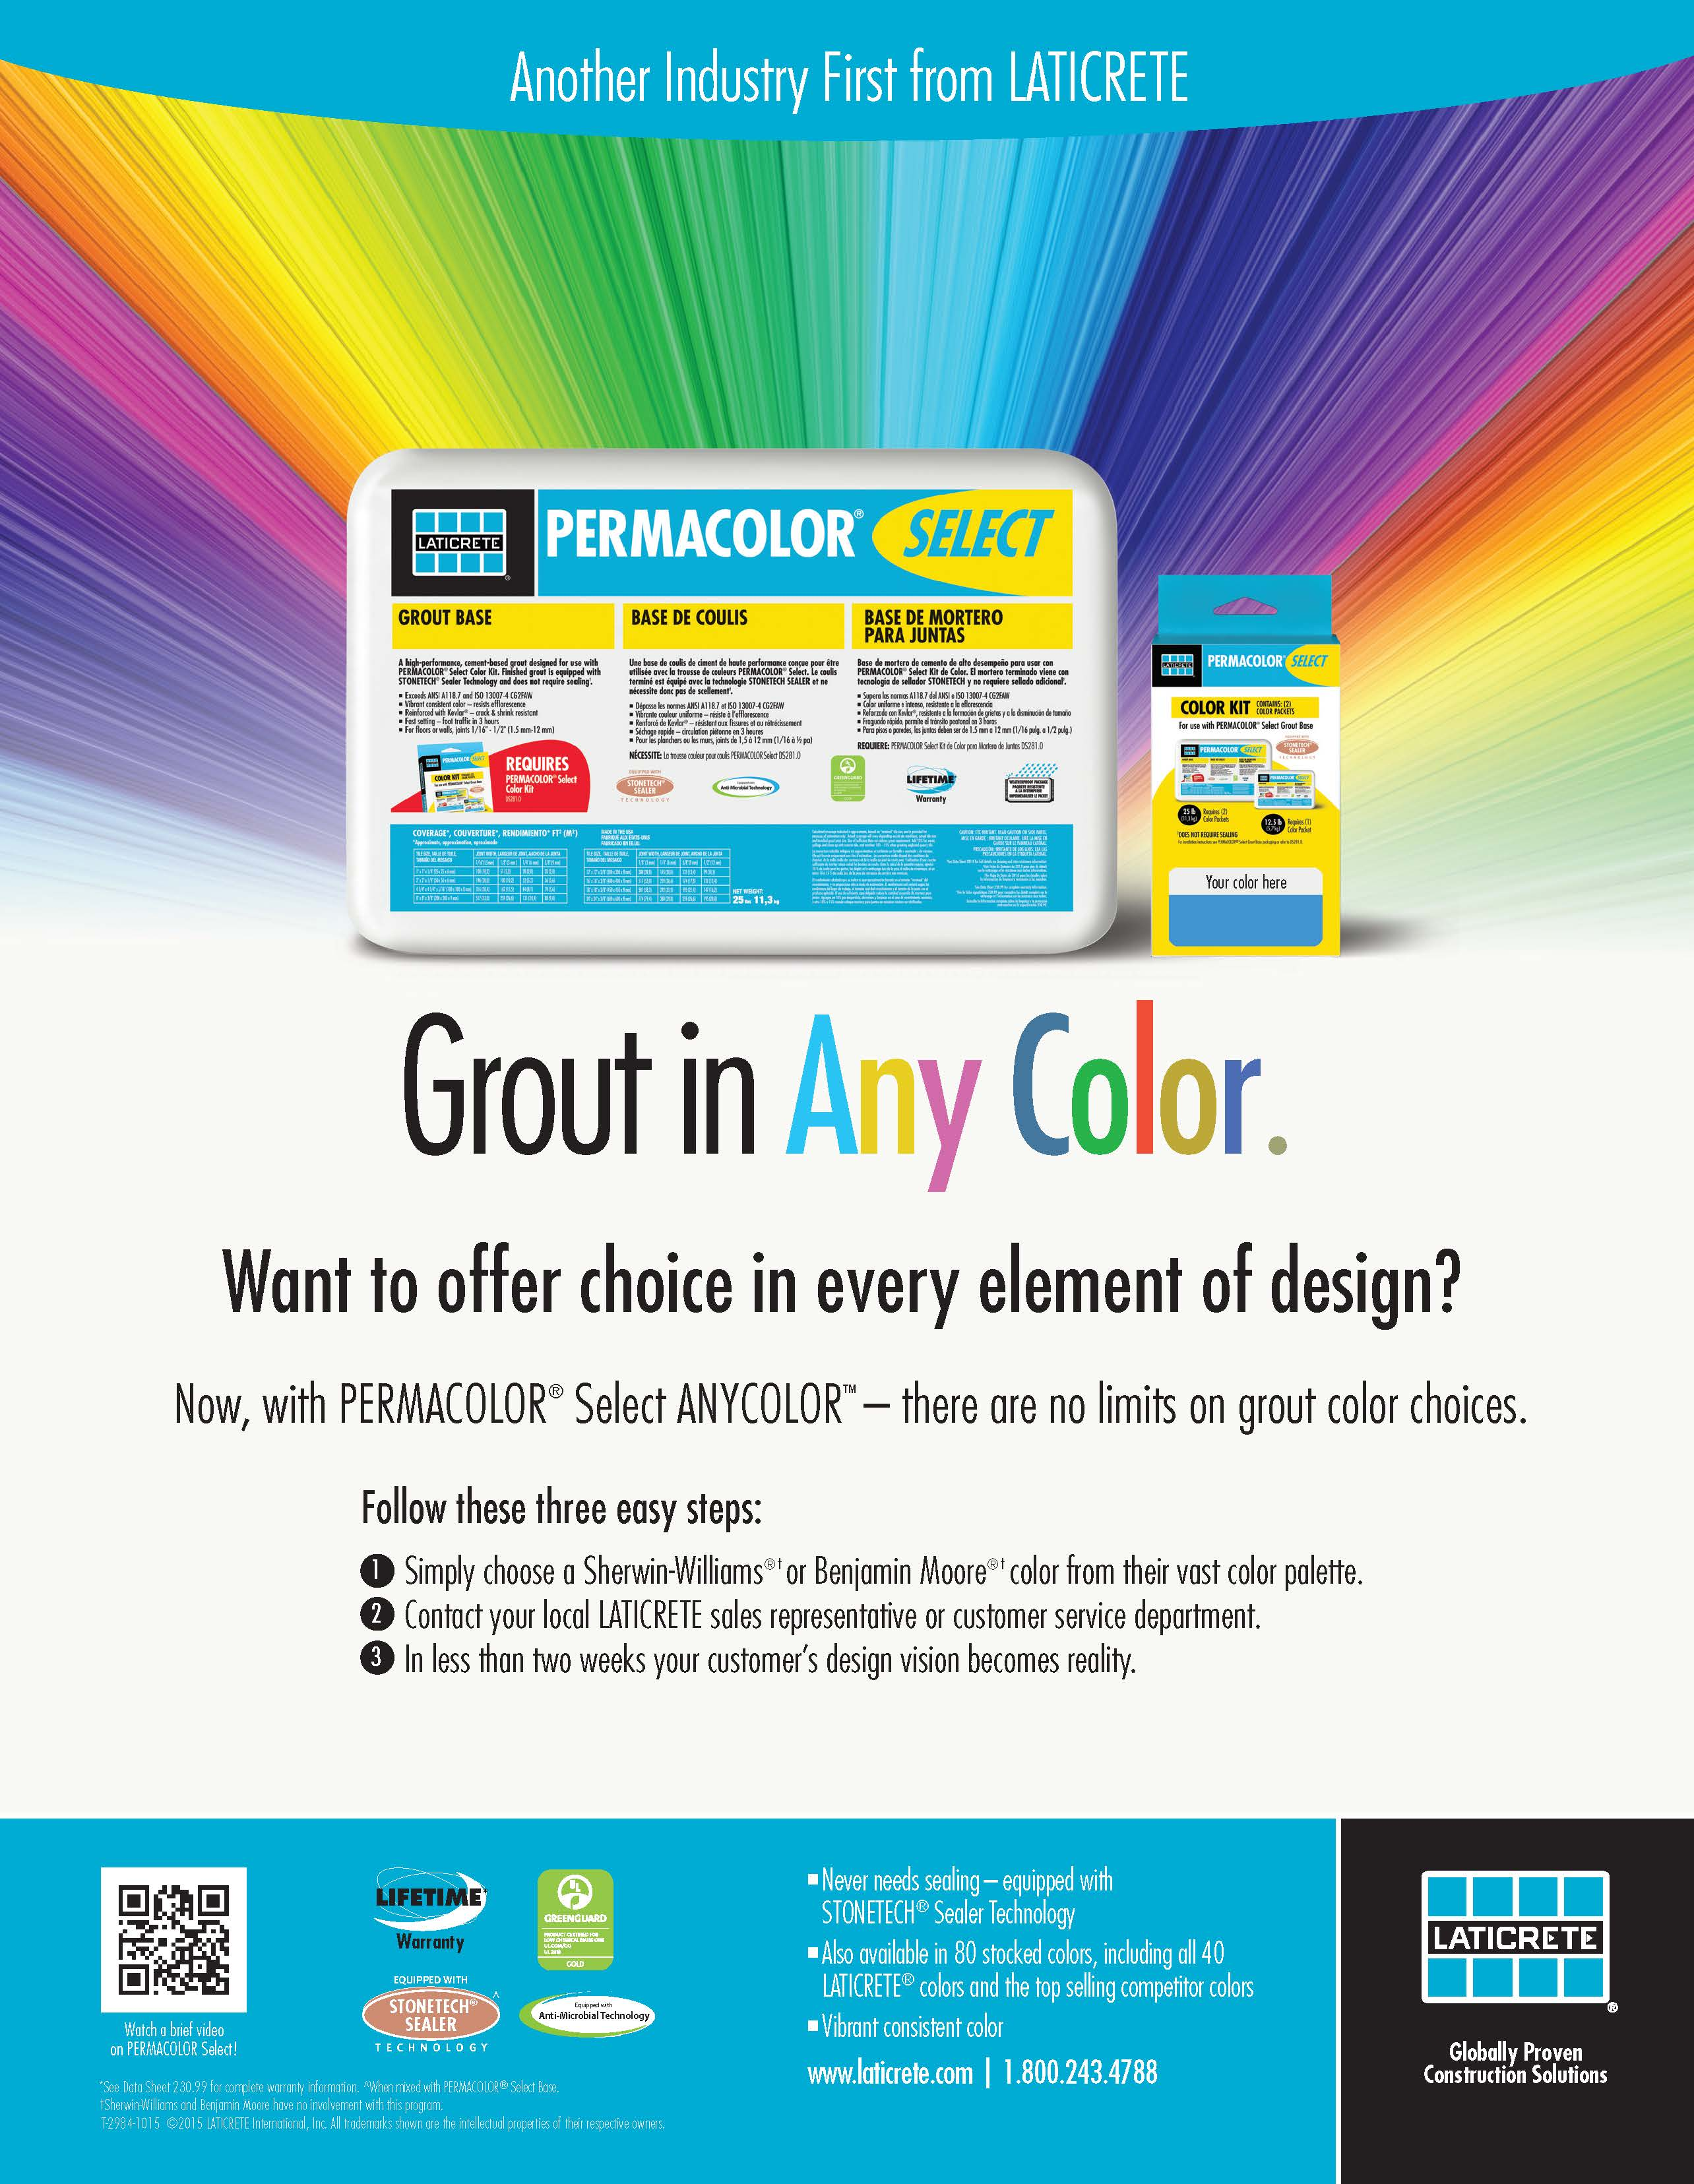 Grout in Any Color - Sell Sheet